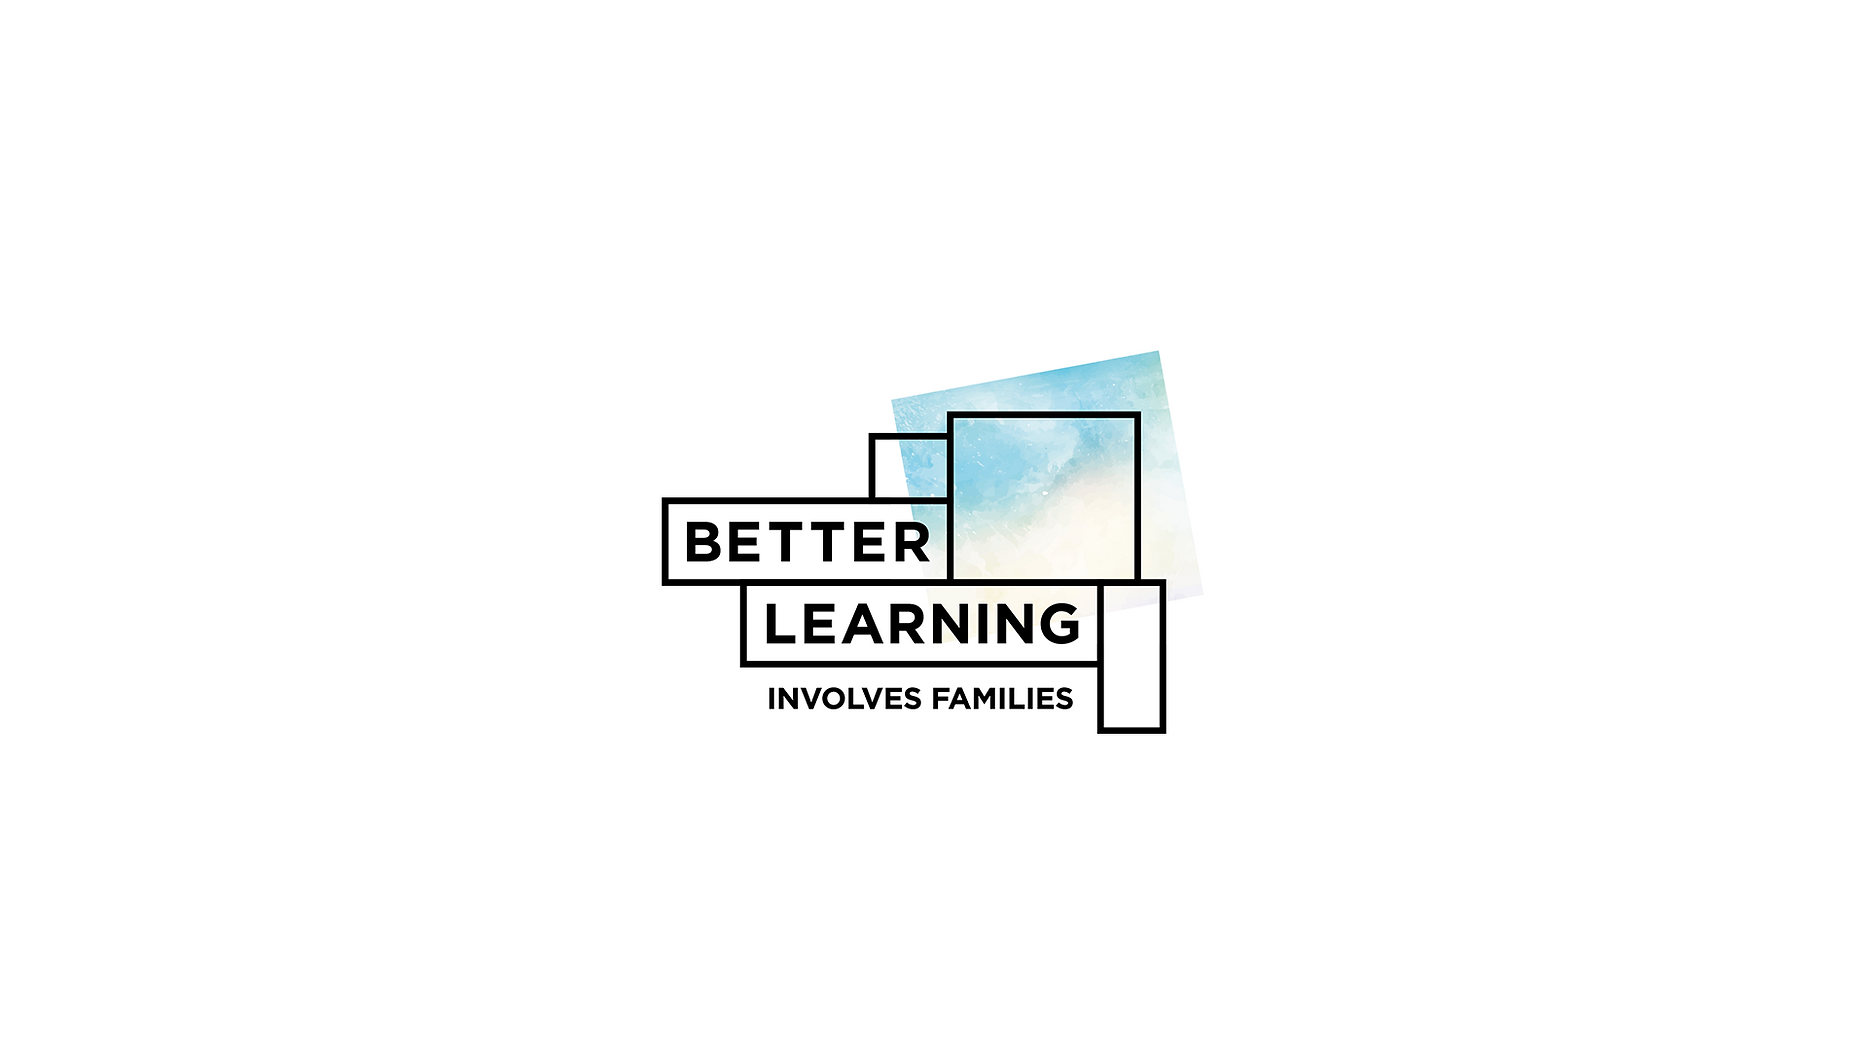 BETTER LEARNING 1.png